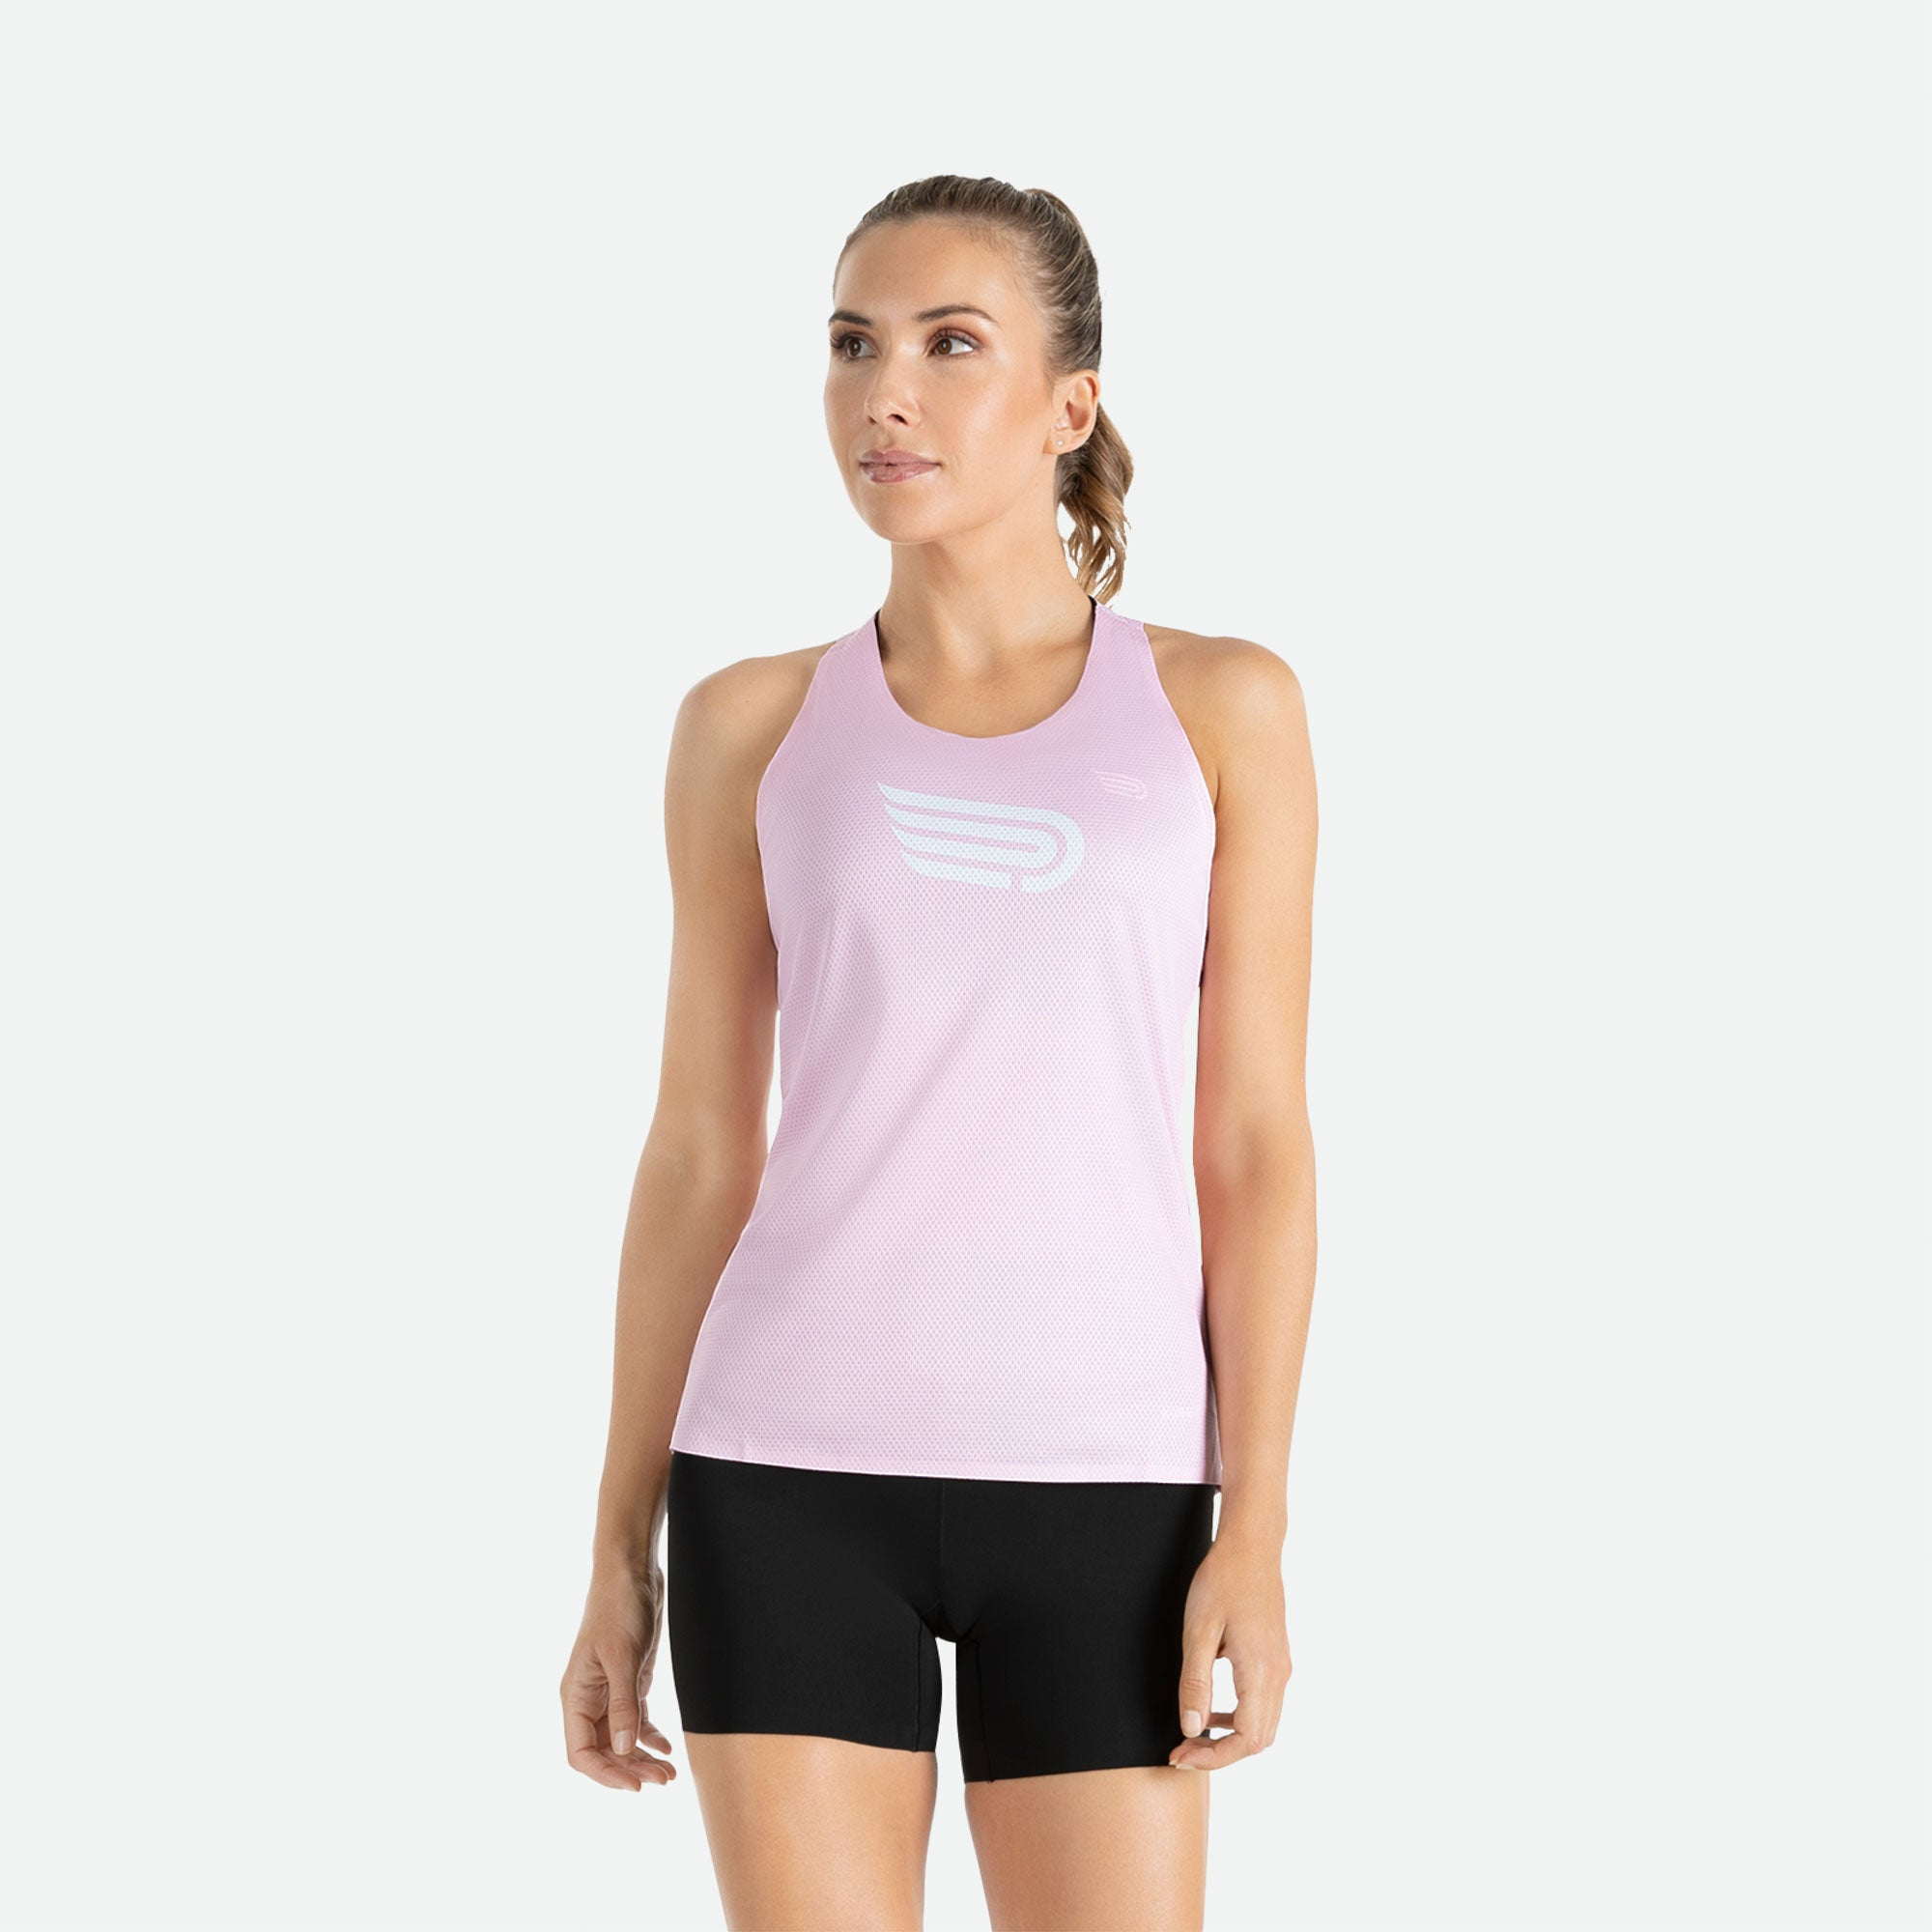 Singlet women's Pressio Ārahi pink/white constructed of high filament mechanical knit fabric for unrestricted freedom of movement, enhanced comfort, and optimal hand feel.